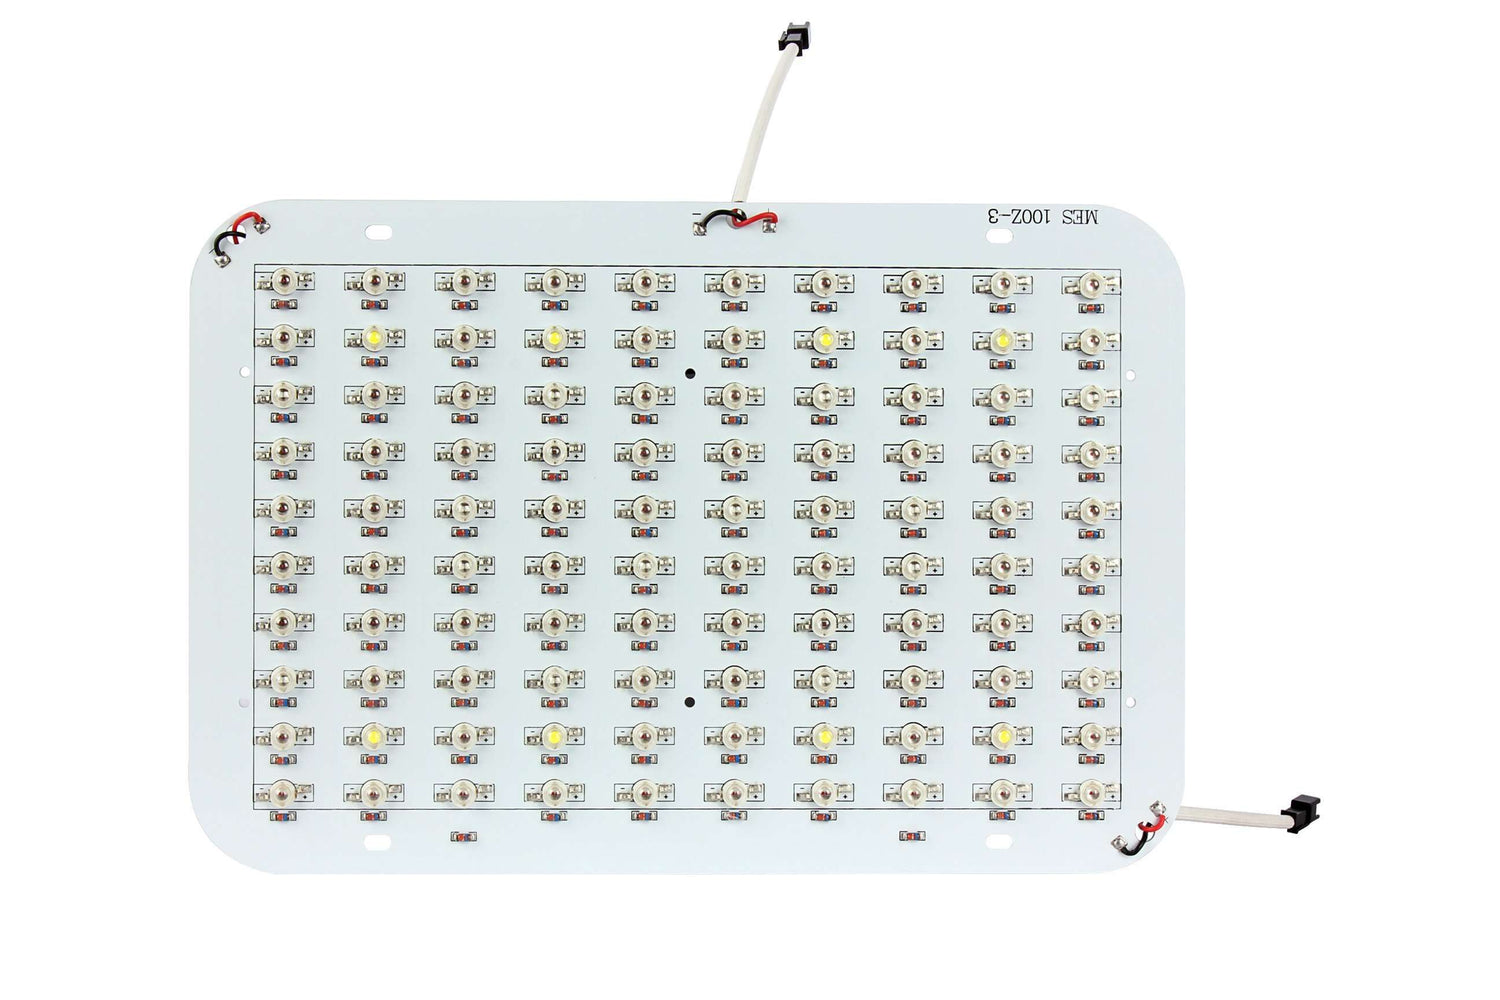 M series 1500w LED Board